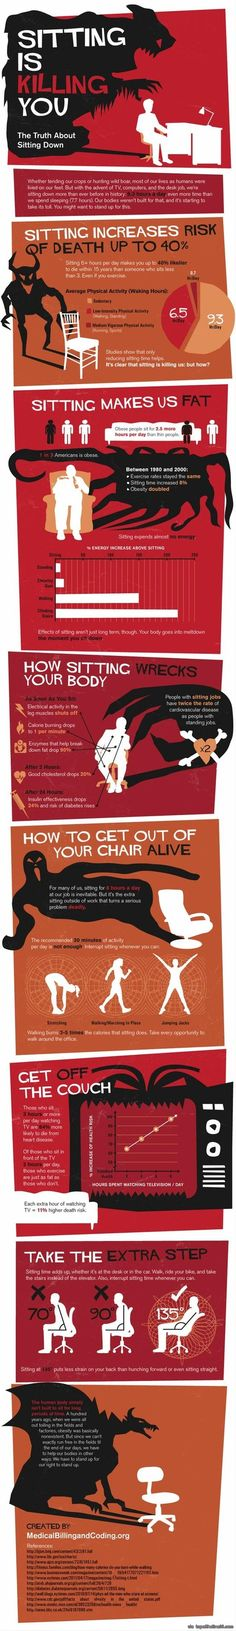 Sitting down is killing us #infograph #health